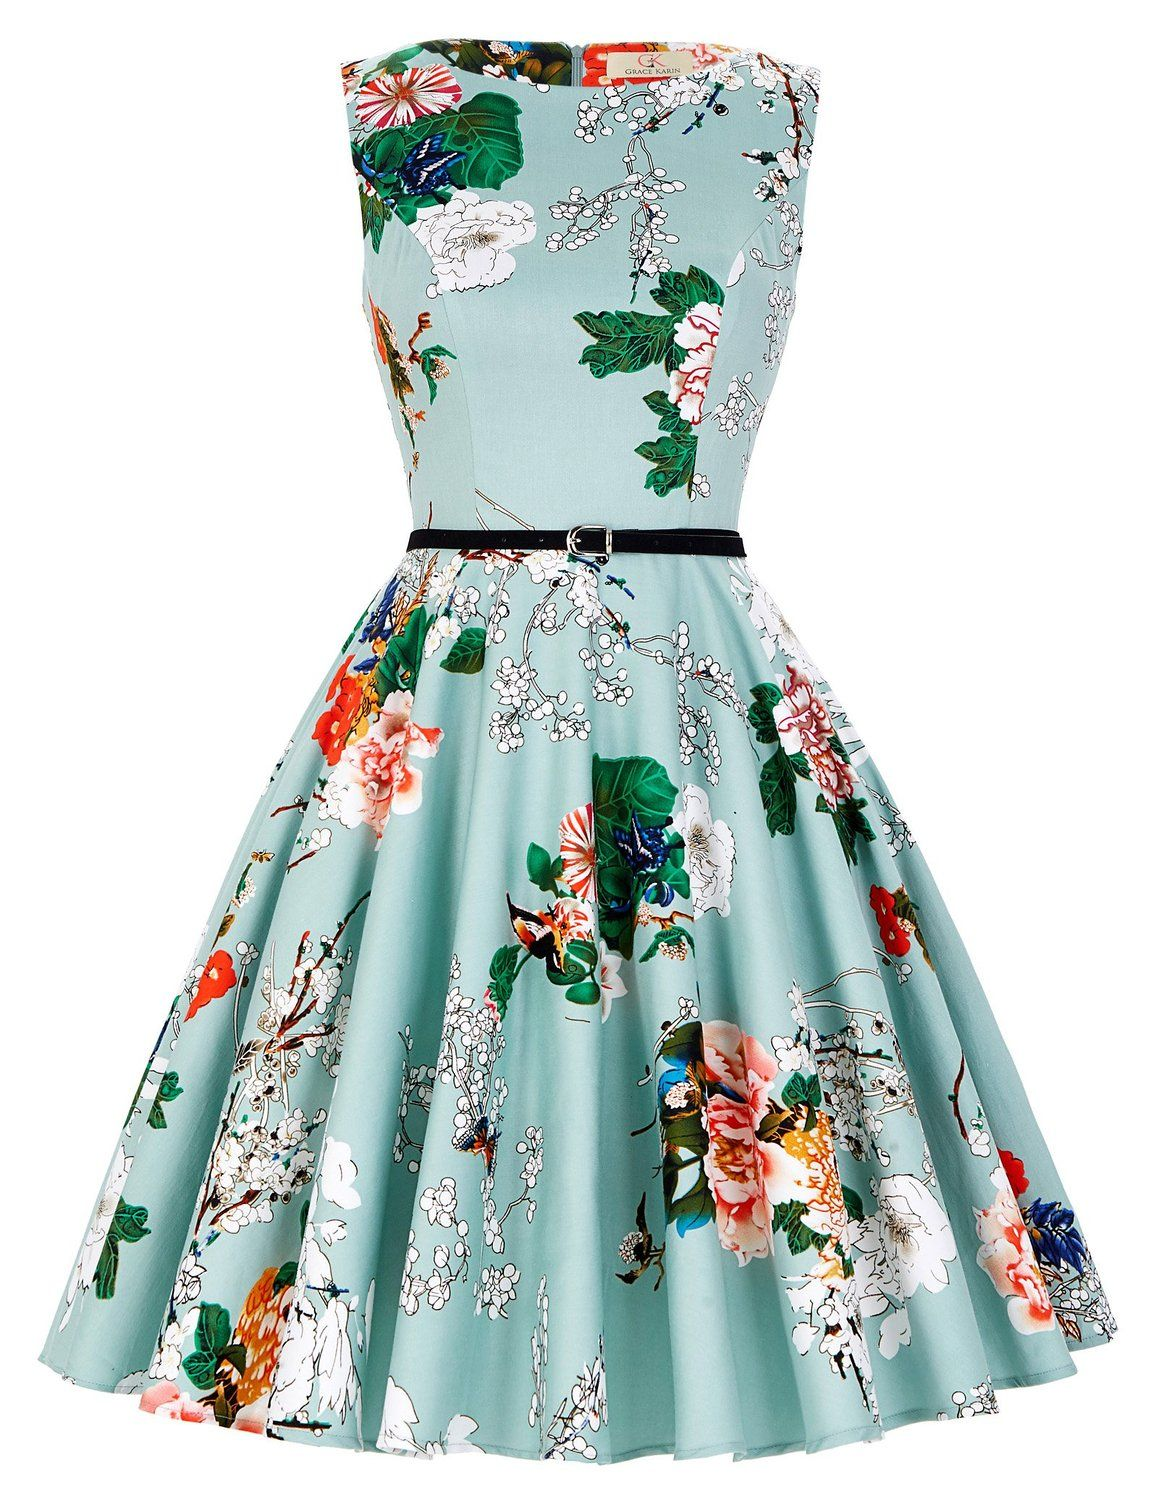 206026a8e0c2 GRACE KARIN BoatNeck Sleeveless Vintage Tea Dress with Belt at Amazon  Women's Clothing store: